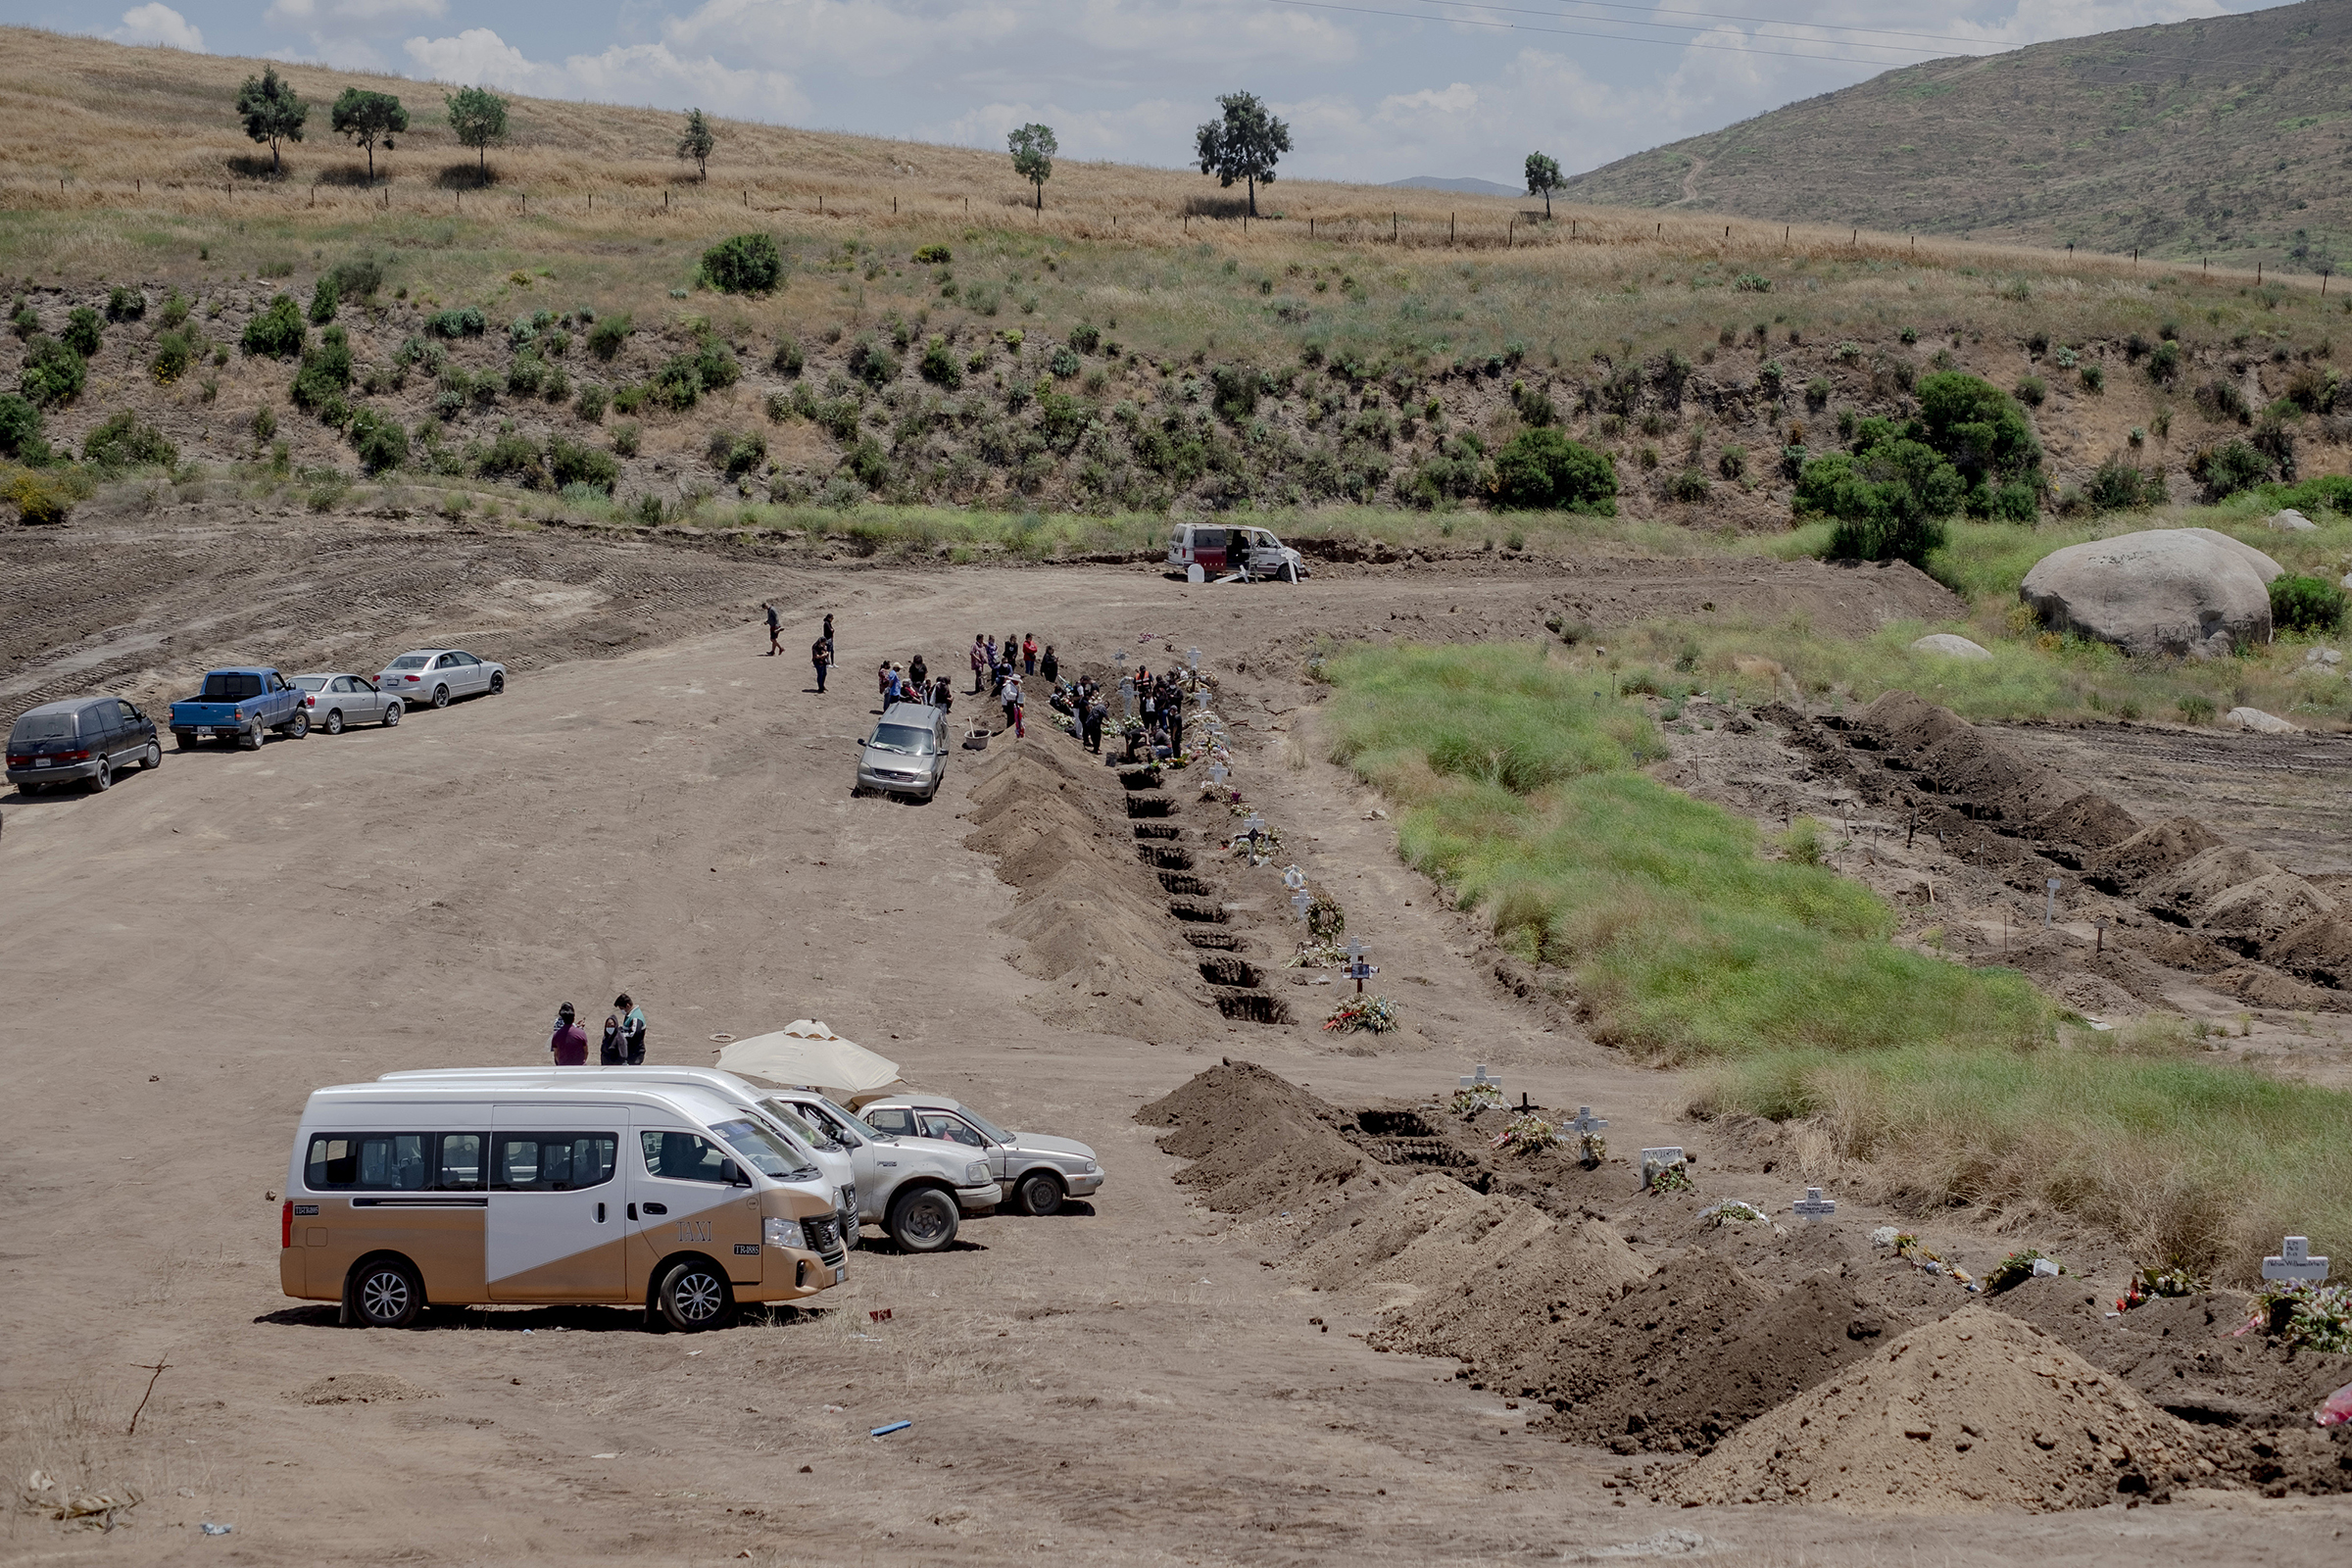 A burial at a newly dug grave at the Municipal Cemetery No. 13 in Tijuana, Mexico, on May 12. Experts say Mexico's COVID-19 case count and death toll have been underreported.